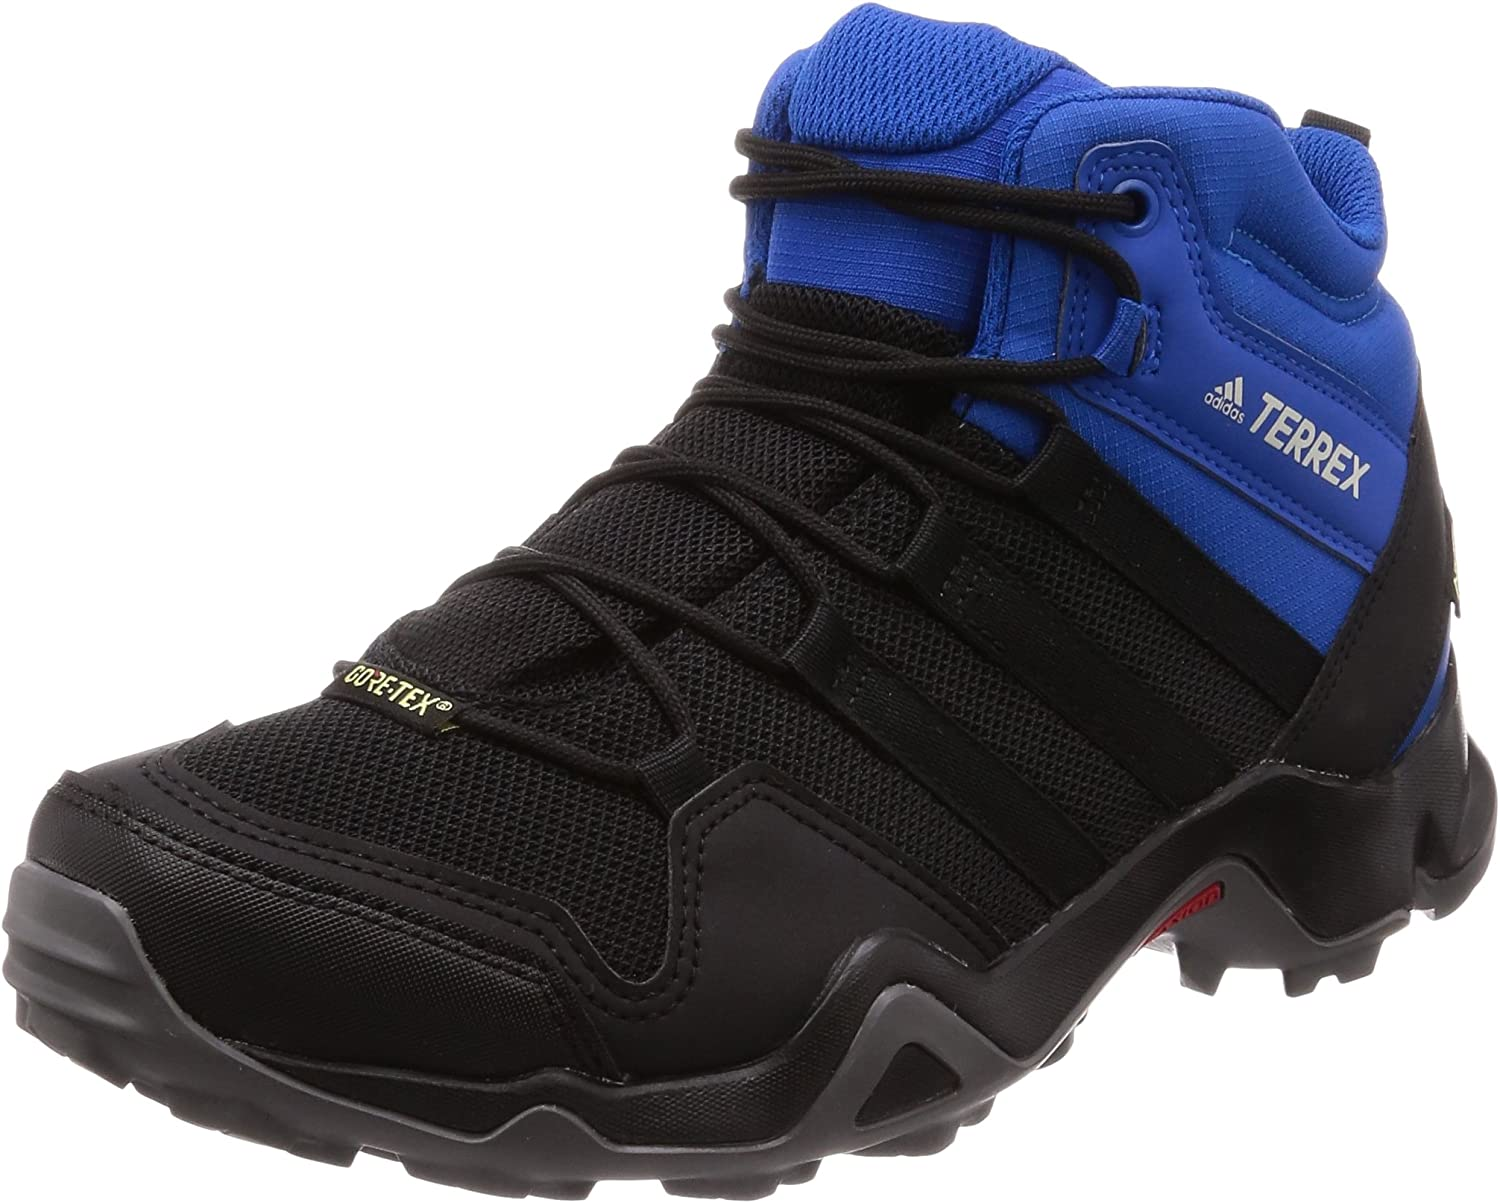 Sarabo árabe cobija Persistente  adidas Men's Terrex Ax2r Mid GTX High Rise Hiking Boots: Amazon.co.uk: Shoes  & Bags